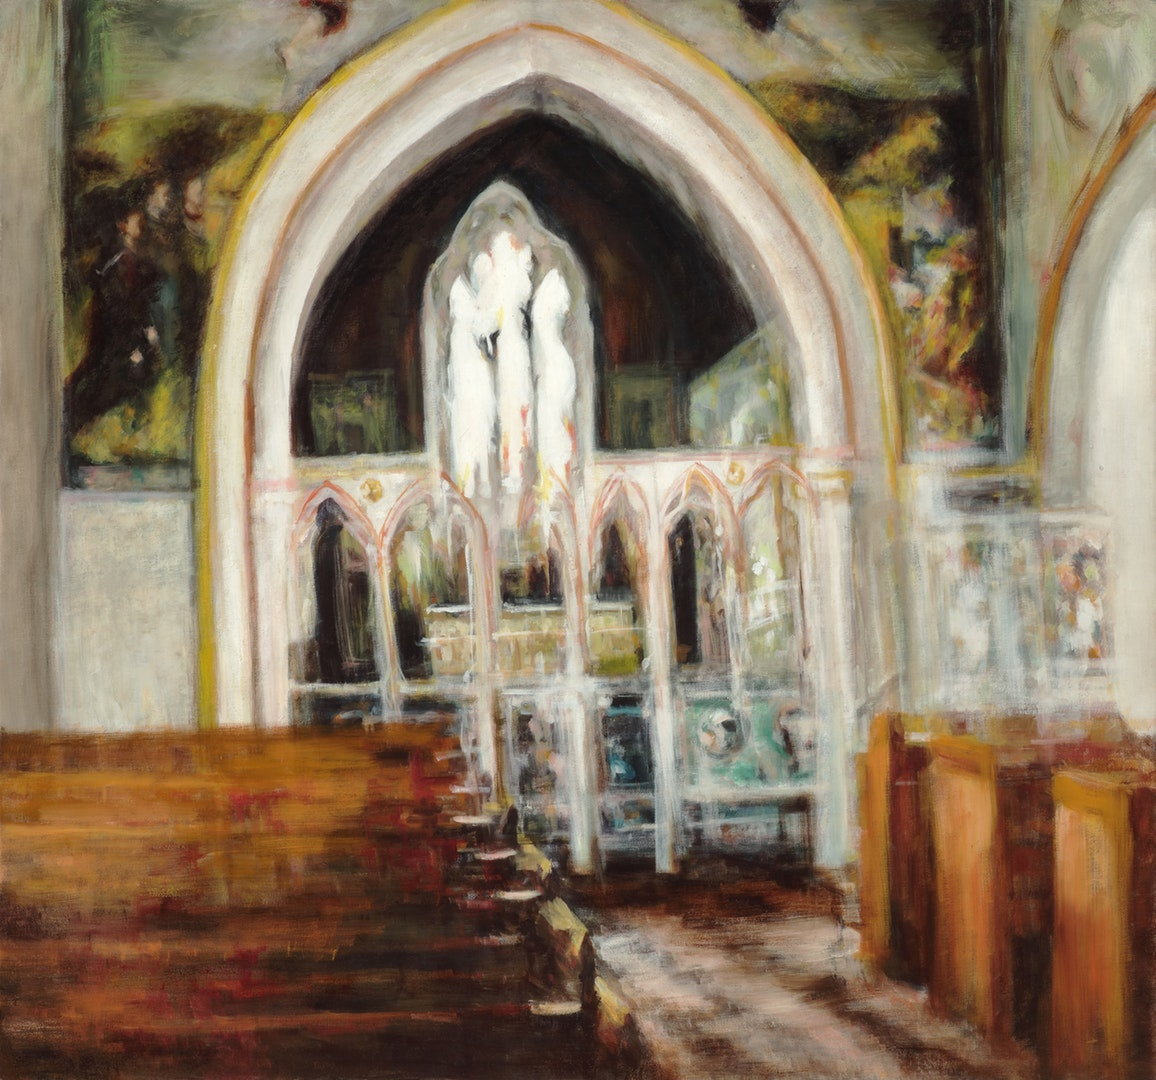 'Chapel', Eri Ishii, Oil on canvas, 81 x 76 cm